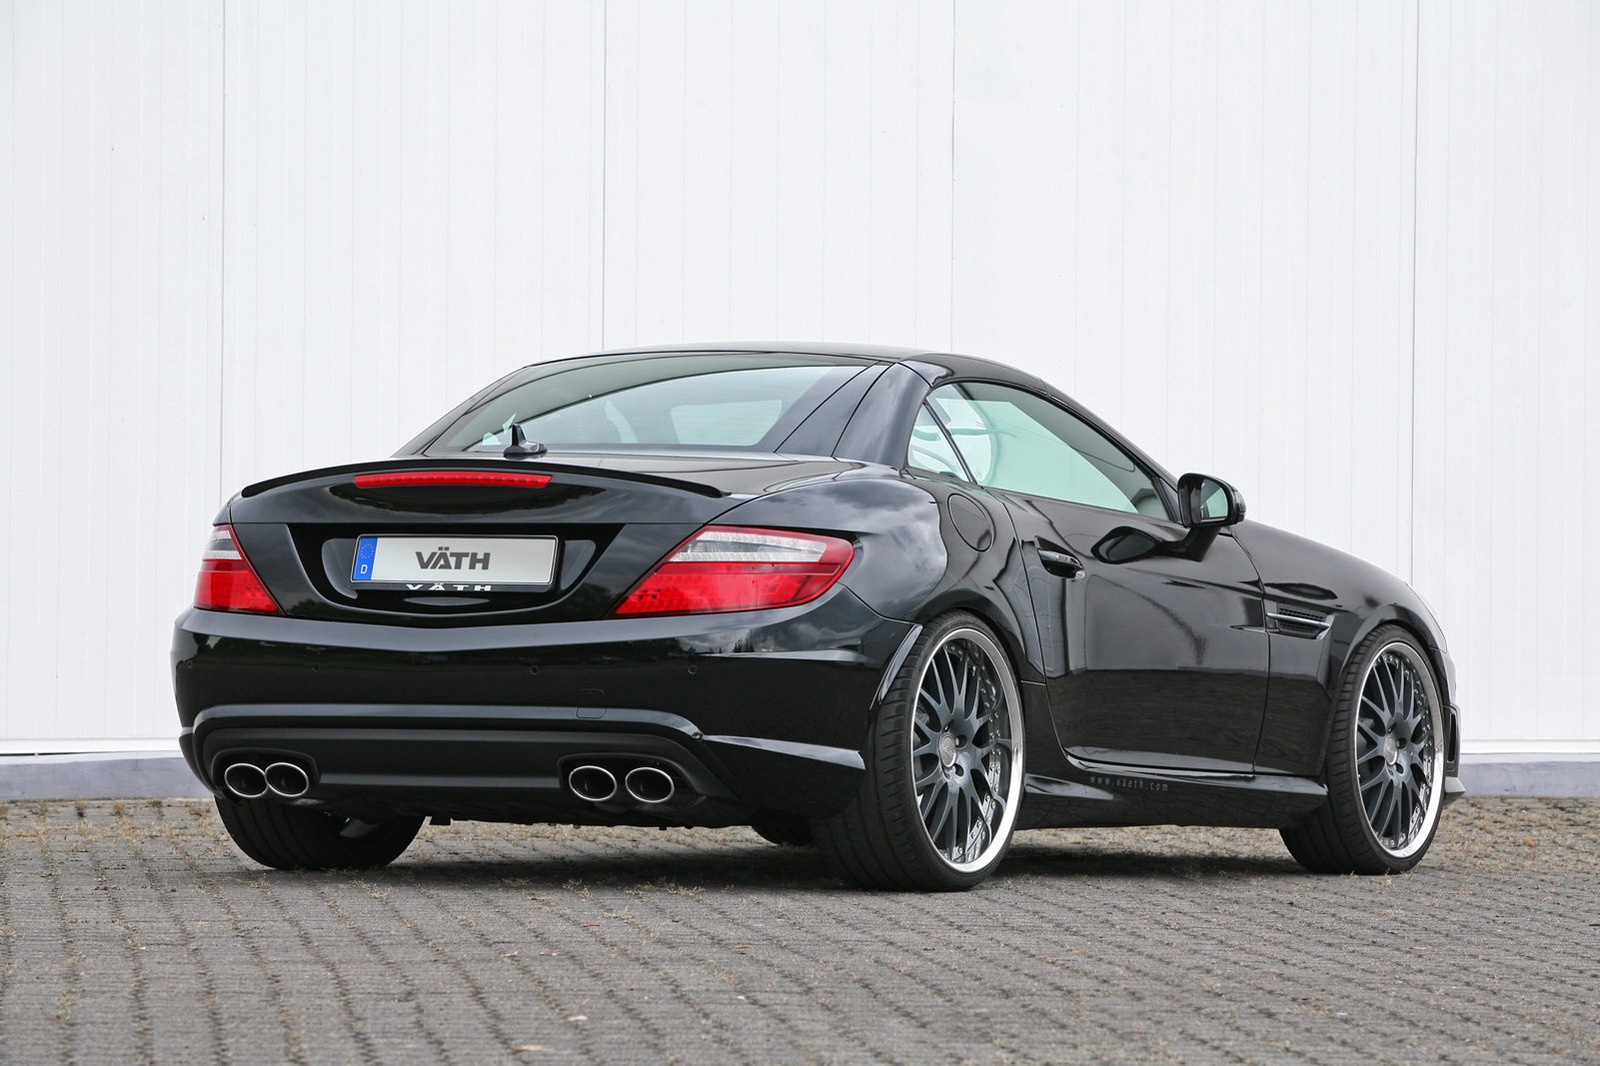 Mercedes benz slk 350 tuning by vath autoevolution for Mercedes benz slk brabus price